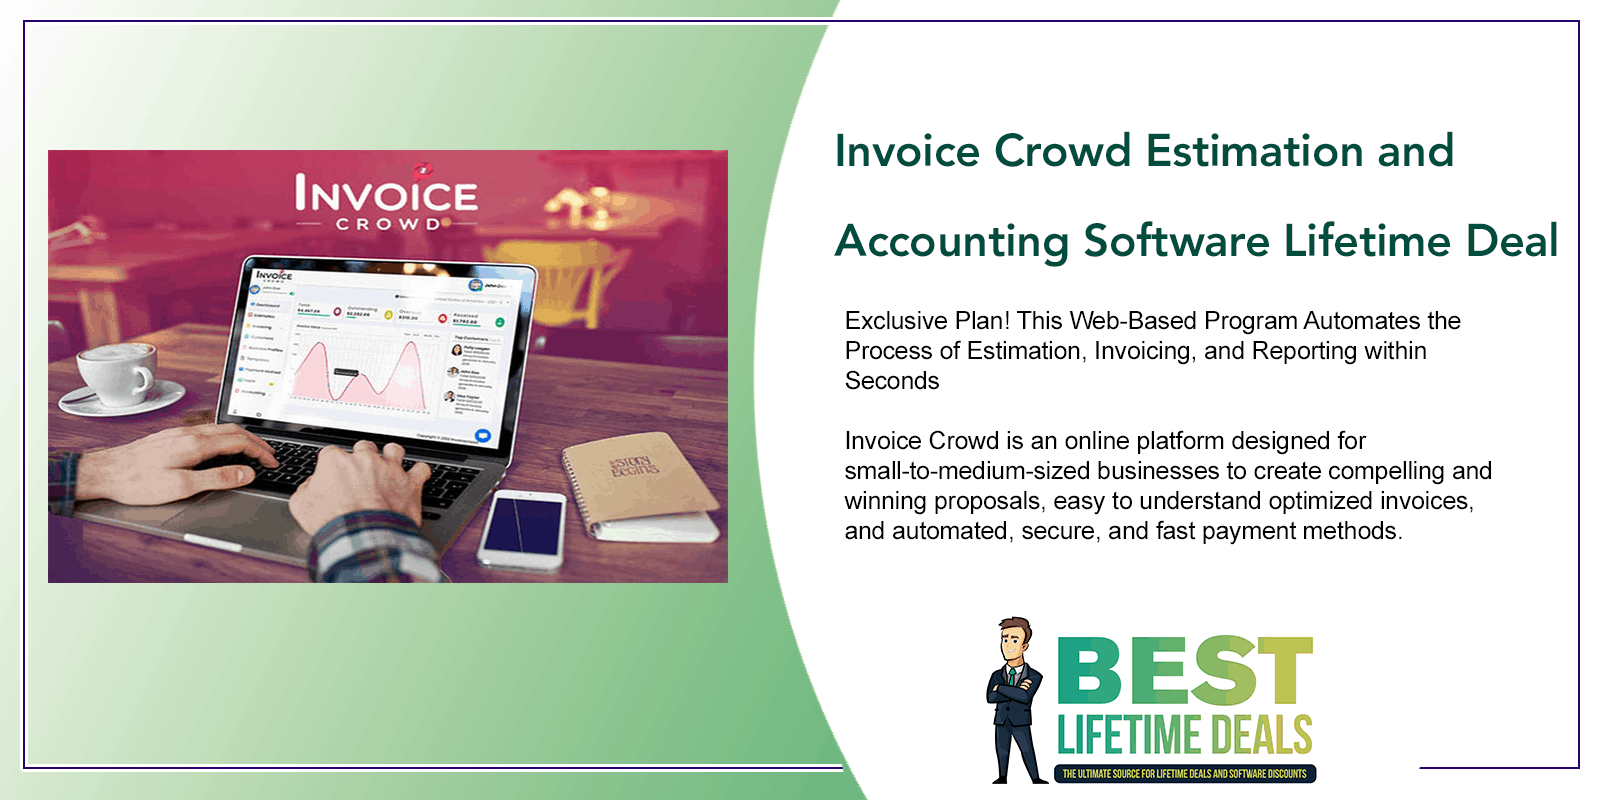 Invoice Crowd Estimation and Accounting Invoicing Software Featured Image